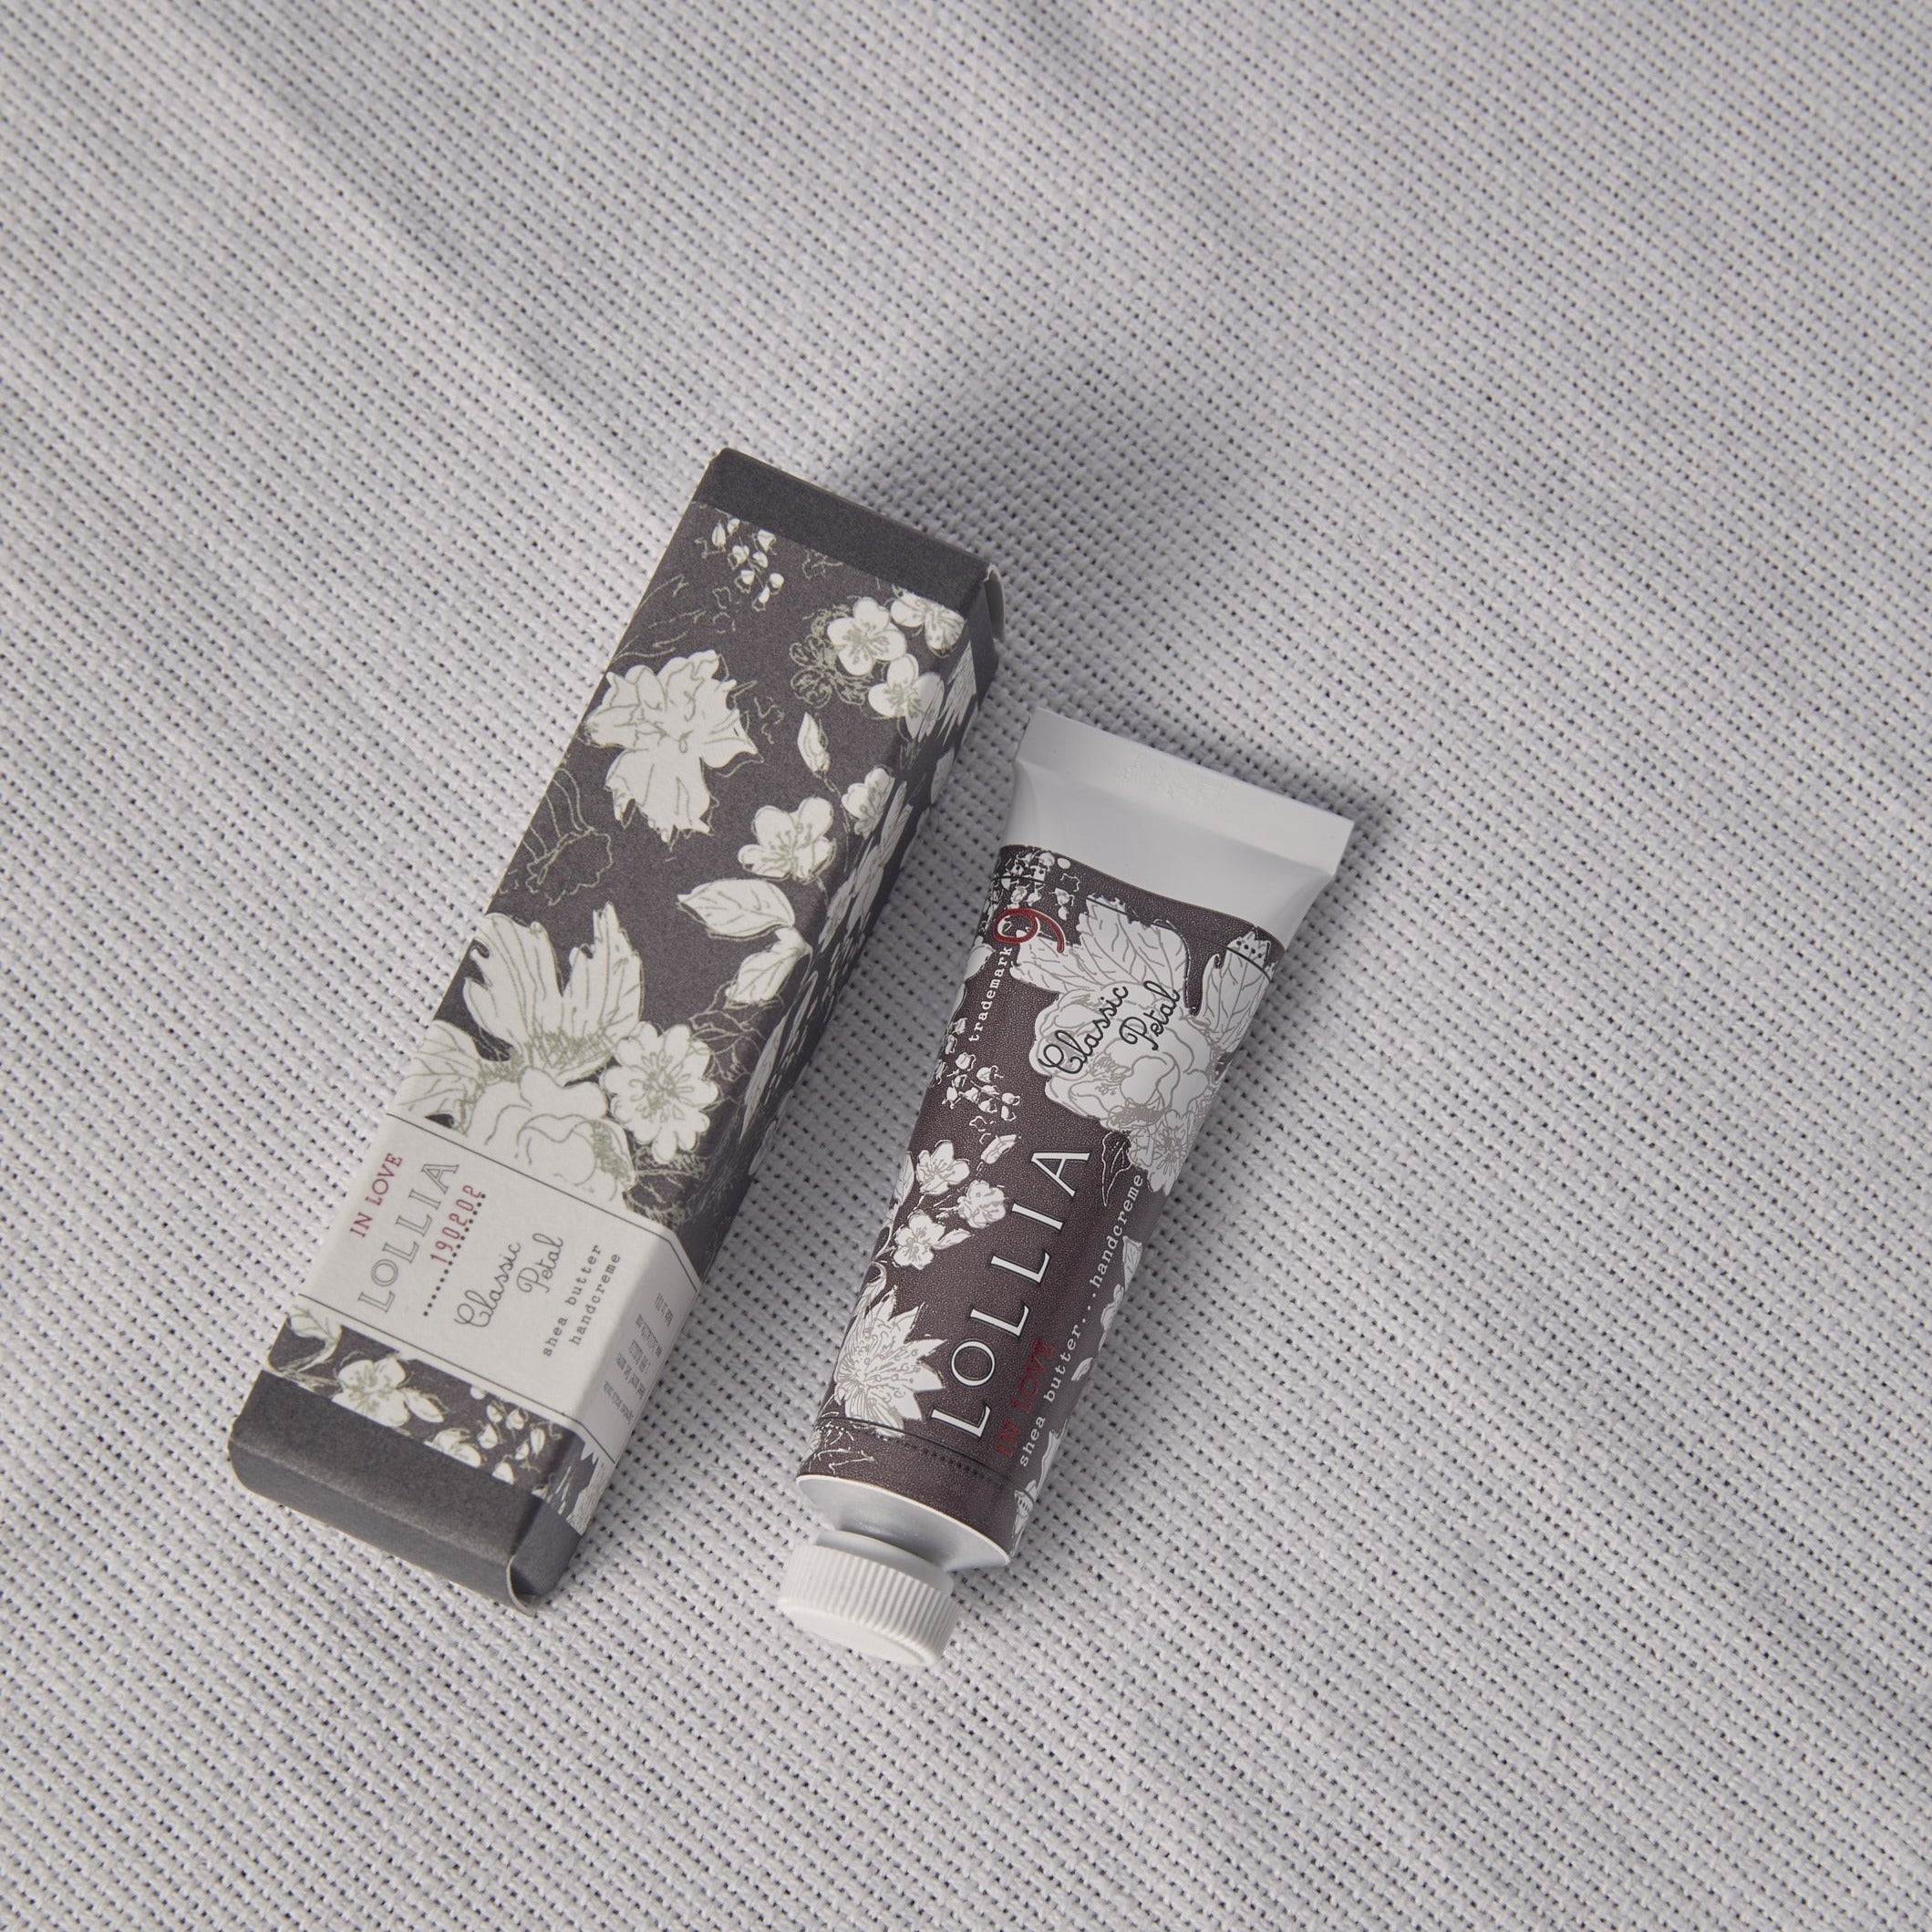 In Love Shea Butter Handcream